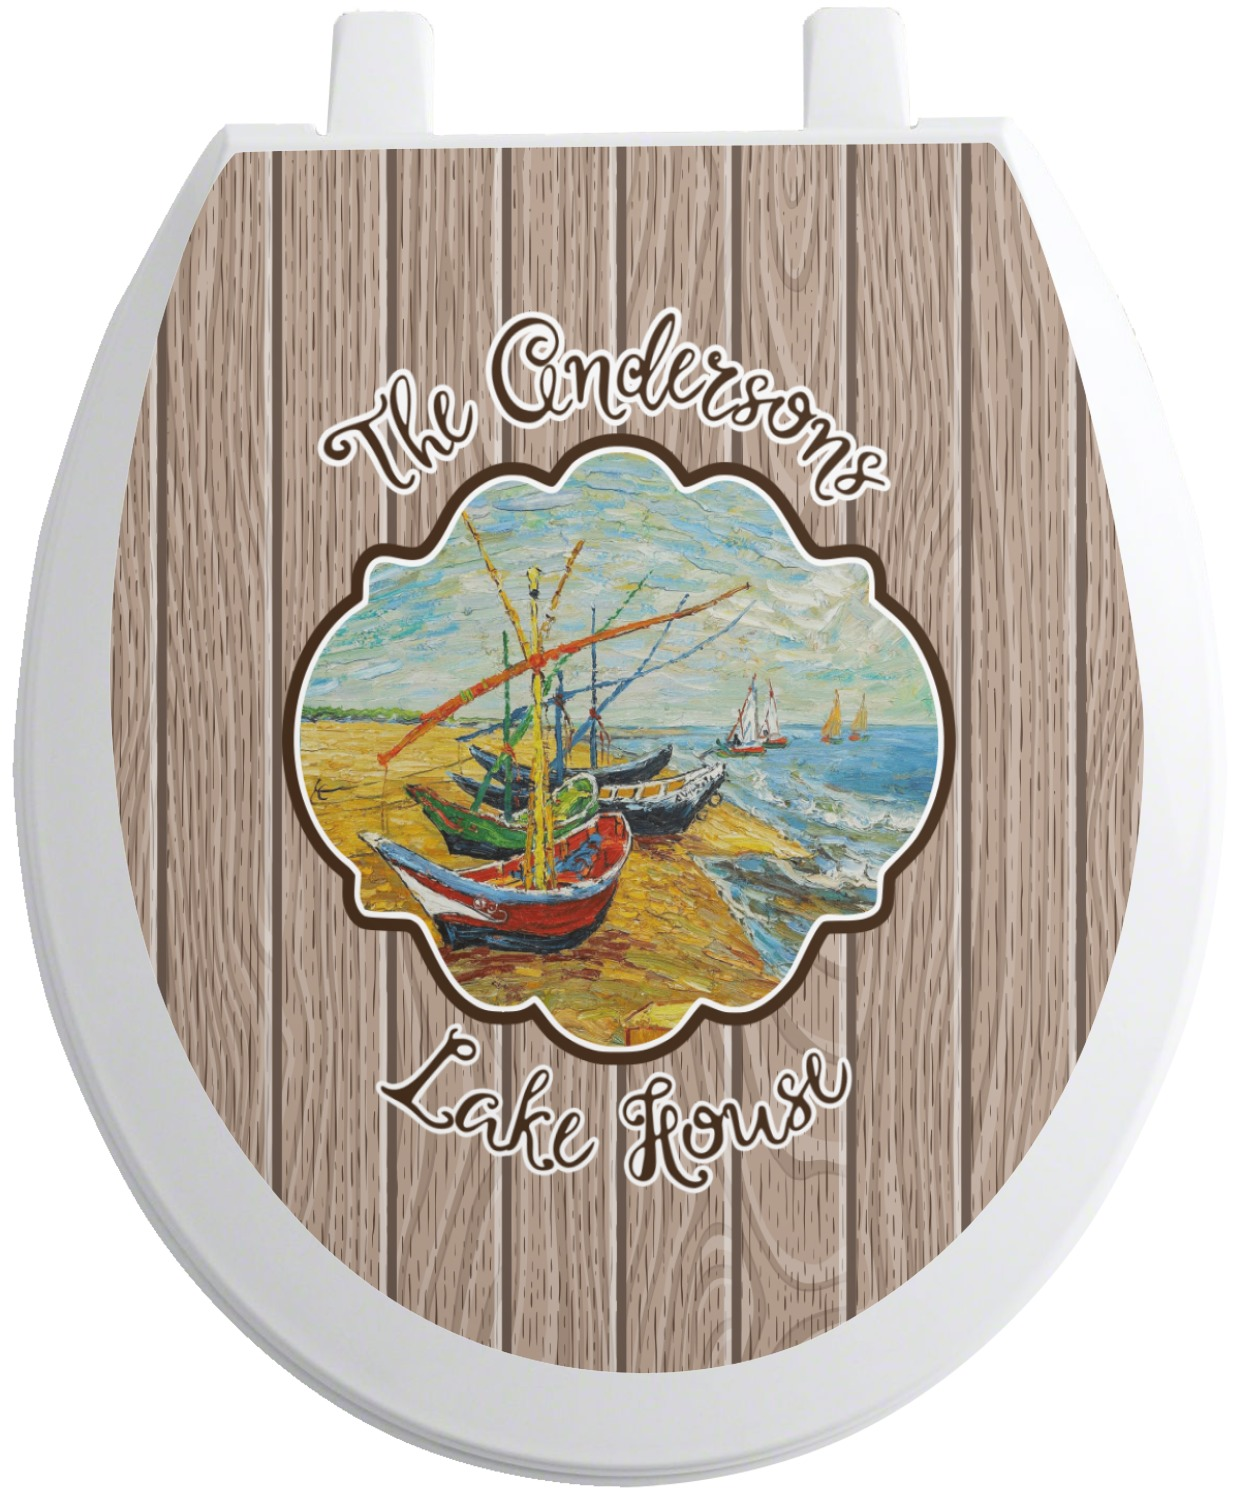 lake house toilet seat decal round personalized. Black Bedroom Furniture Sets. Home Design Ideas